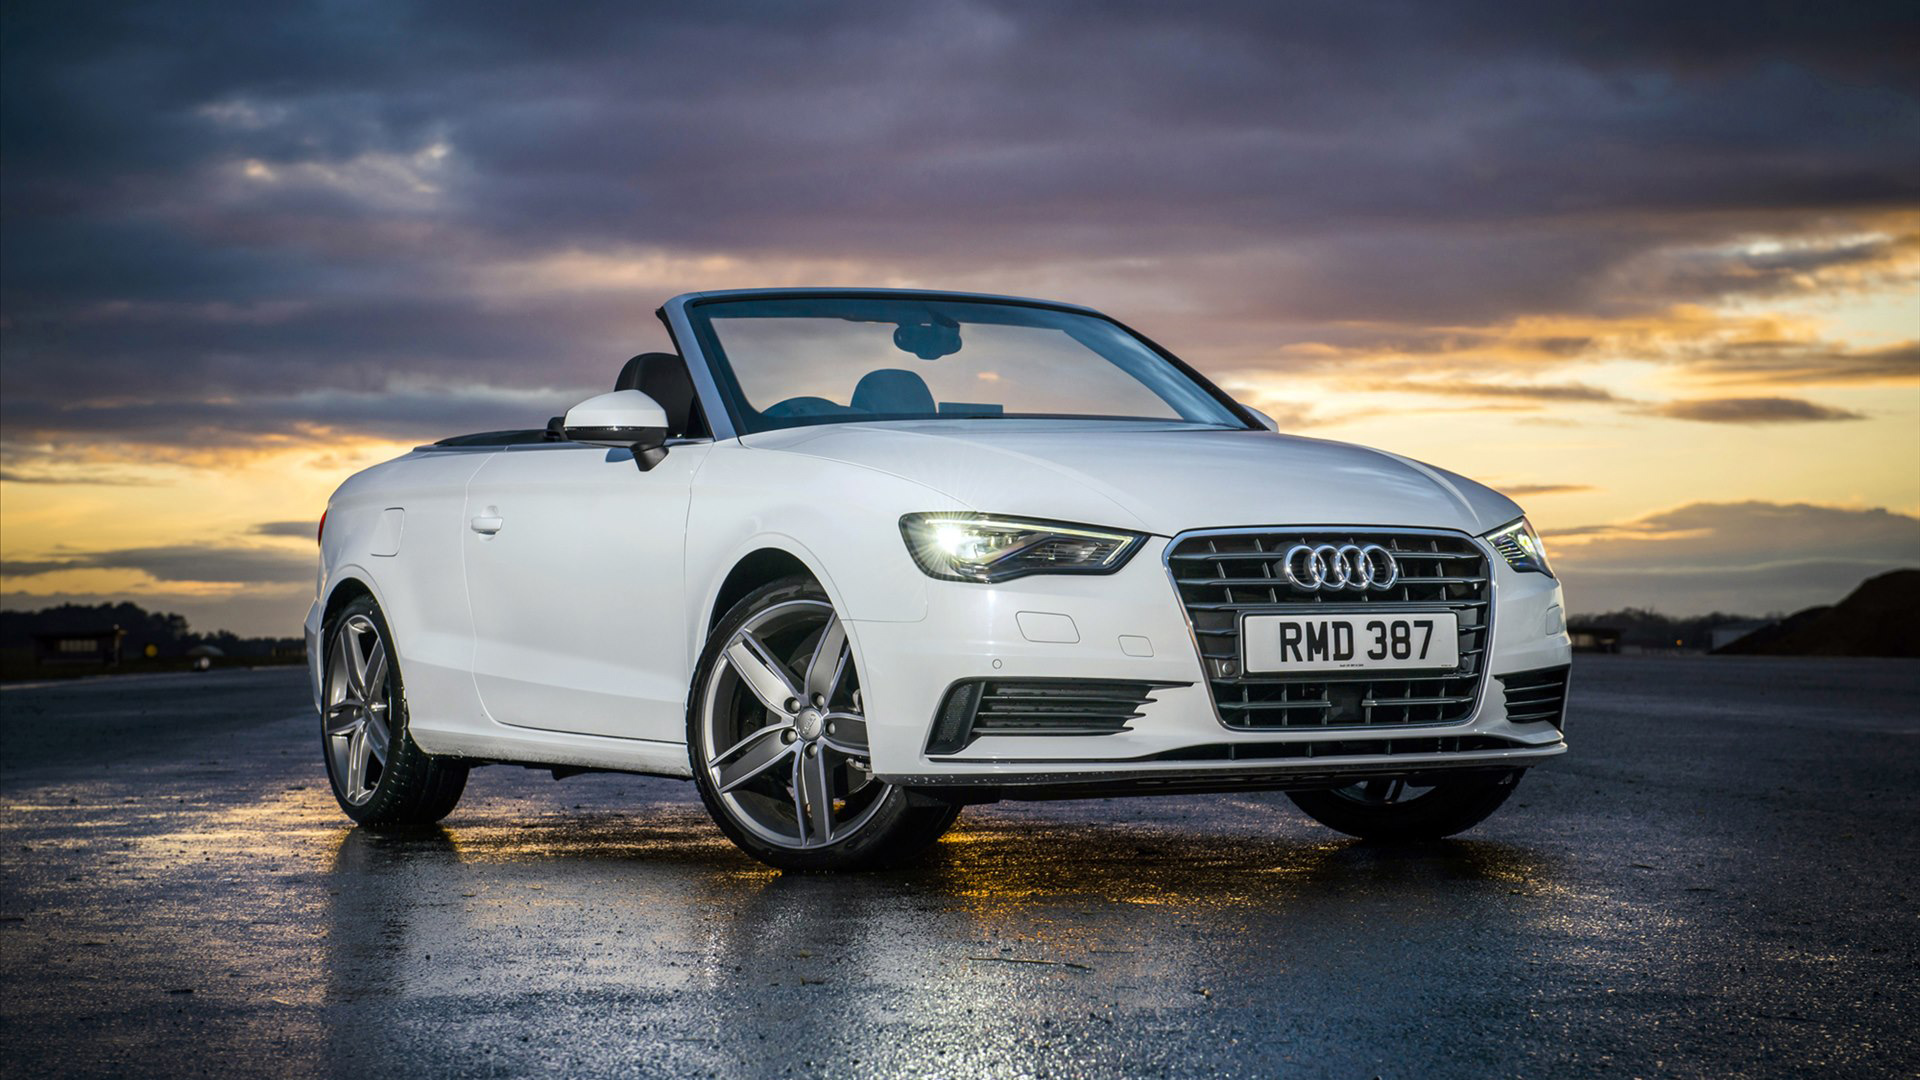 2015 Audi A3 Cabriolet Sport Wallpaper HD Car Wallpapers 1920x1080